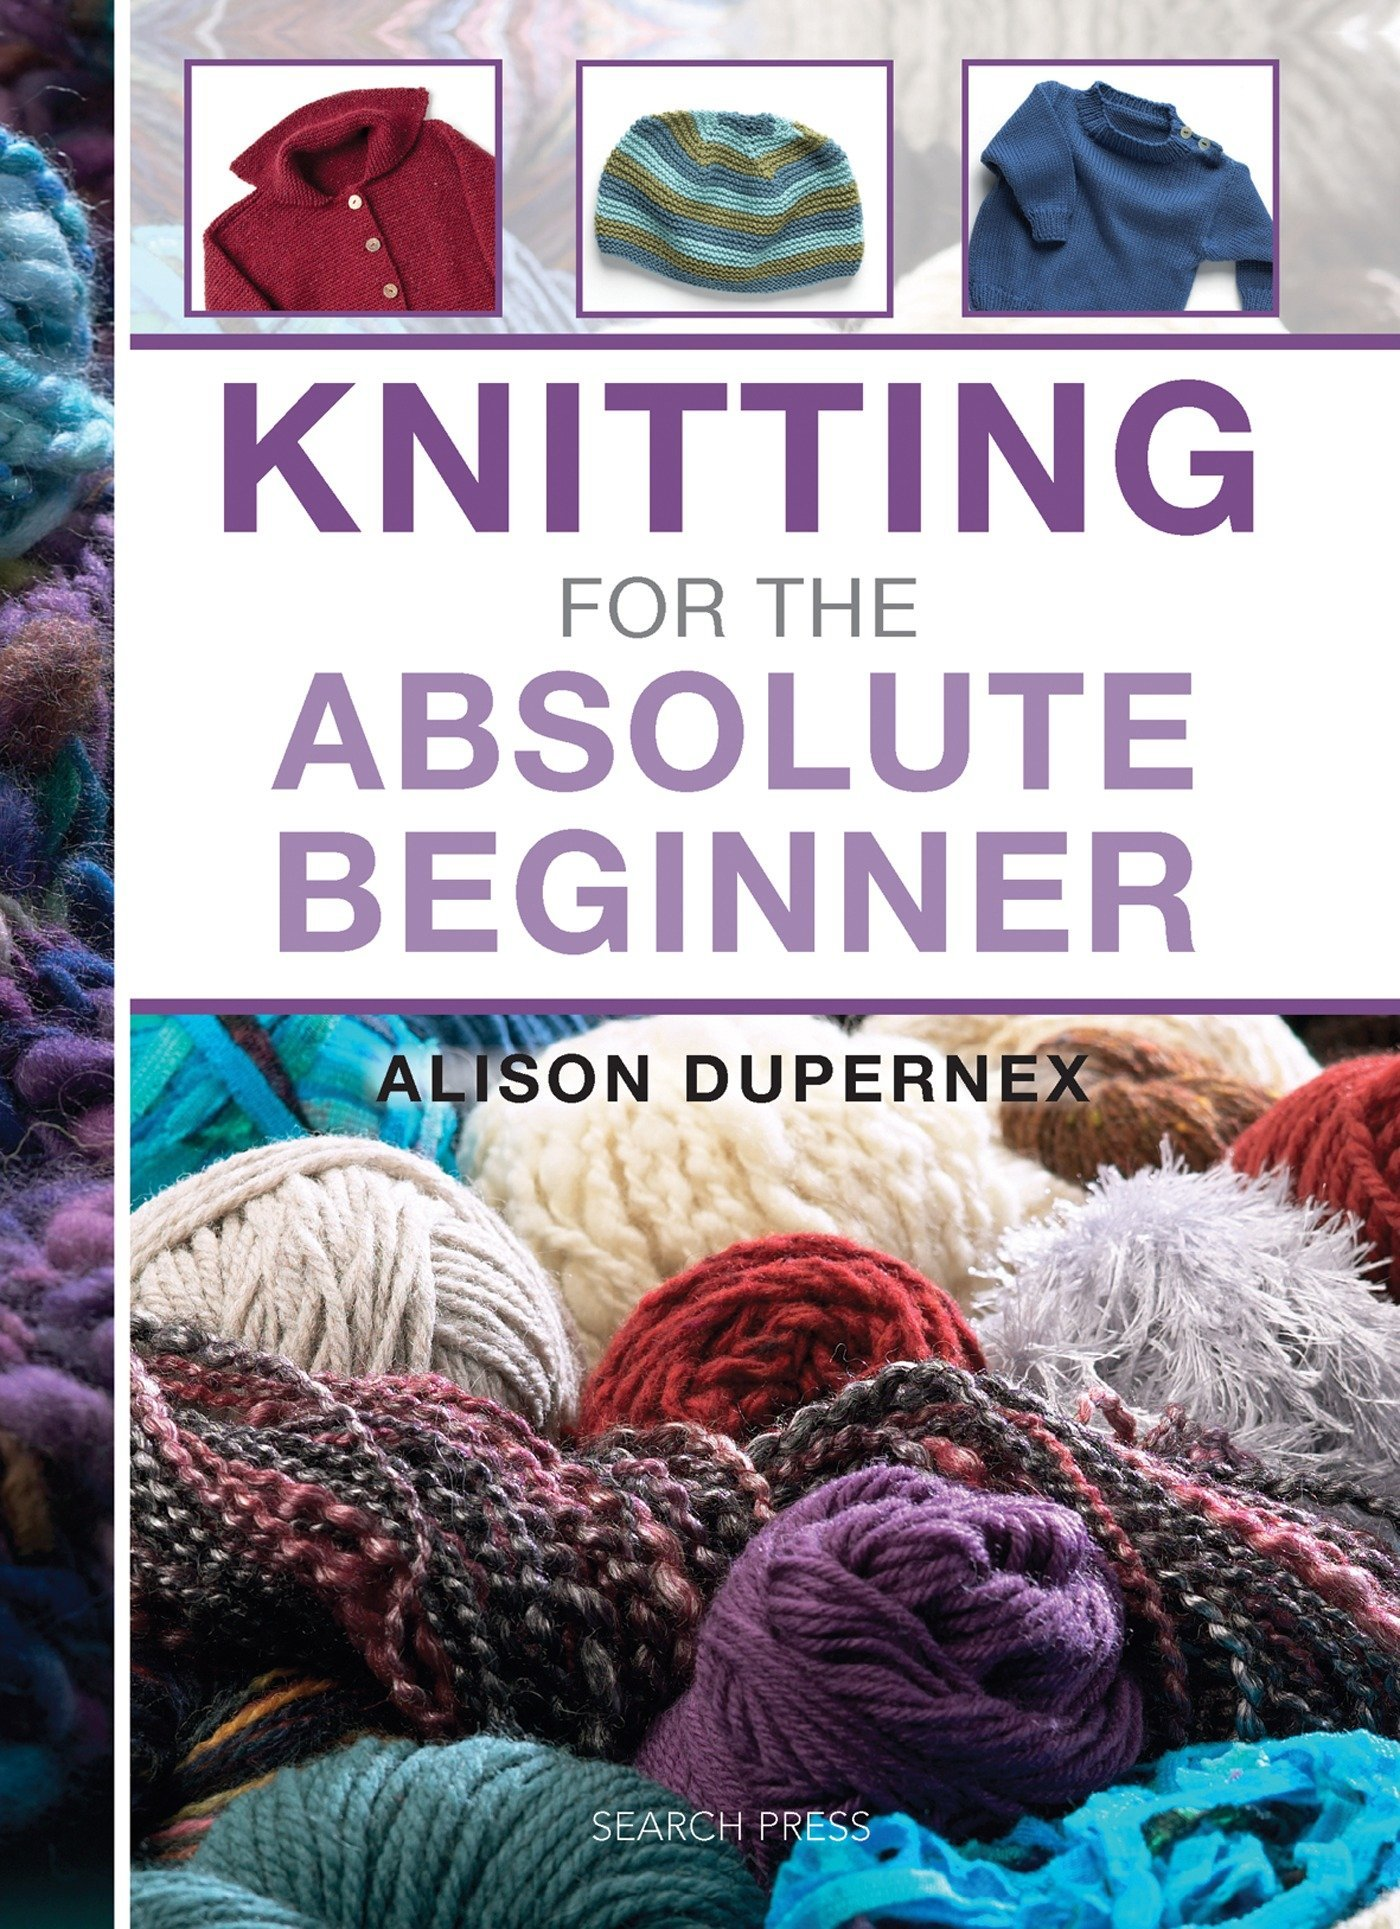 Knitting for the Absolute Beginner Hardcover – November 26, 2012 Alison Dupernex Search Press 184448873X SP-88735